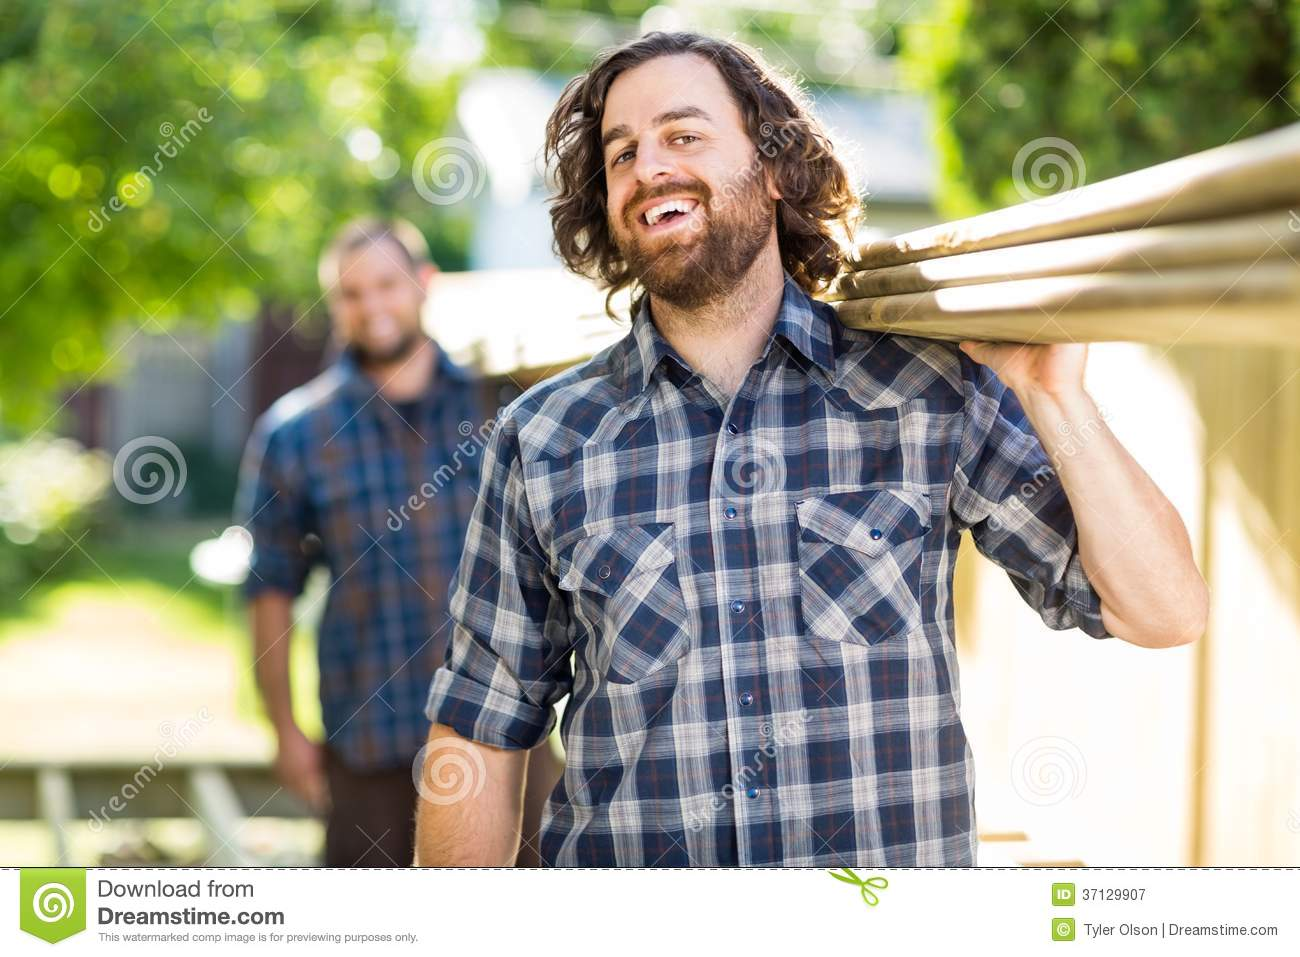 Carpenter With Coworker Carrying Planks While